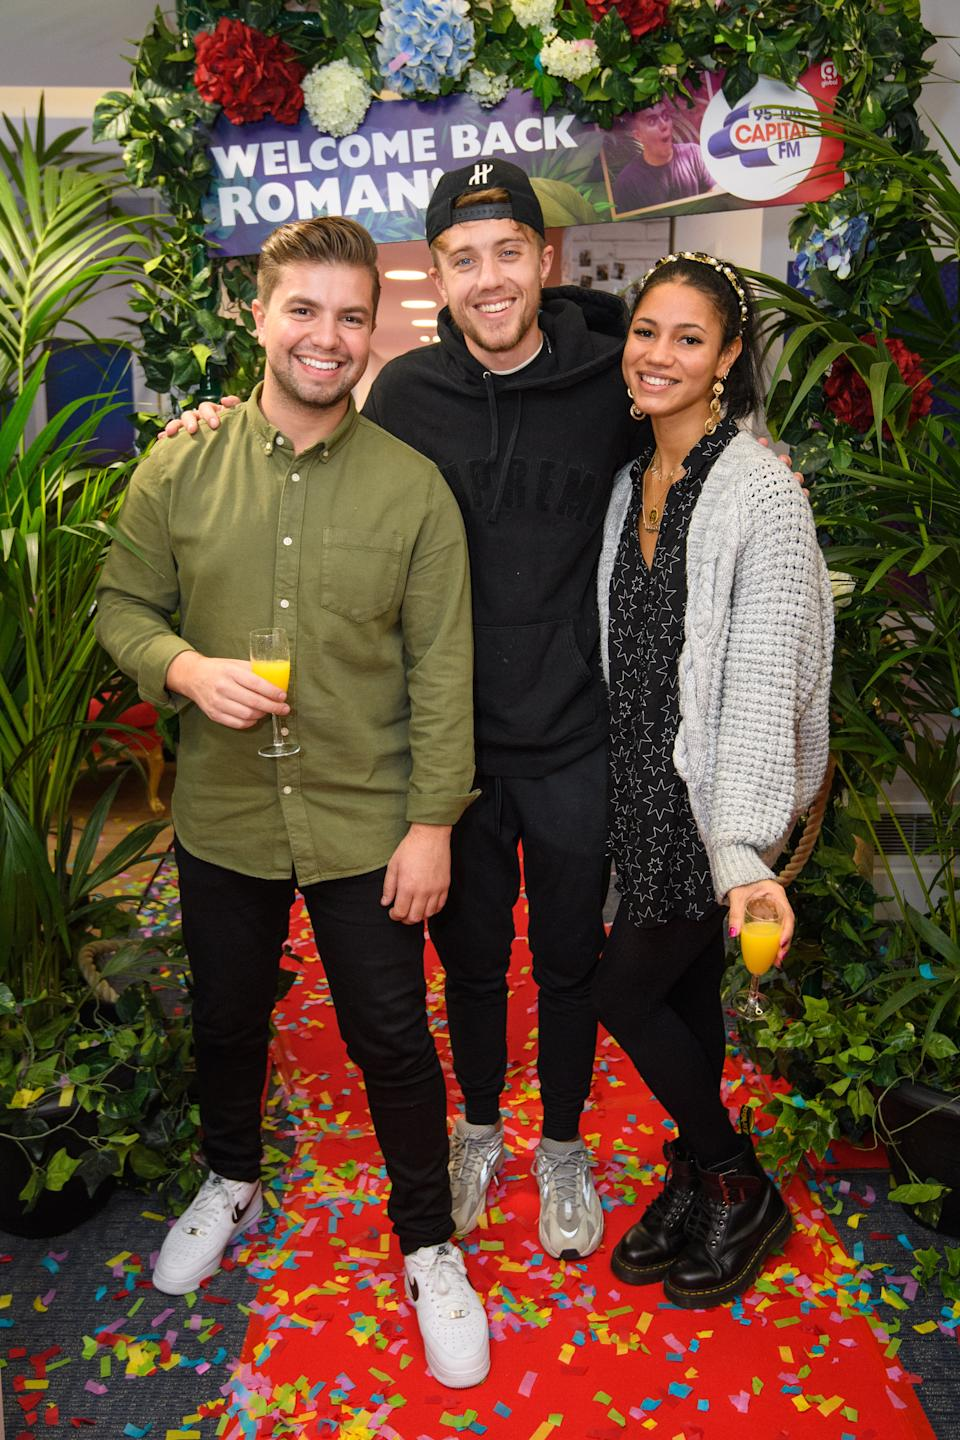 Capital DJ Roman Kemp (centre) is greeted by Sonny Jay and Vick Hope, on his first day back at Capital Breakfast, after coming third in 'I'm A Celebrity... Get Me Out Of Here!'